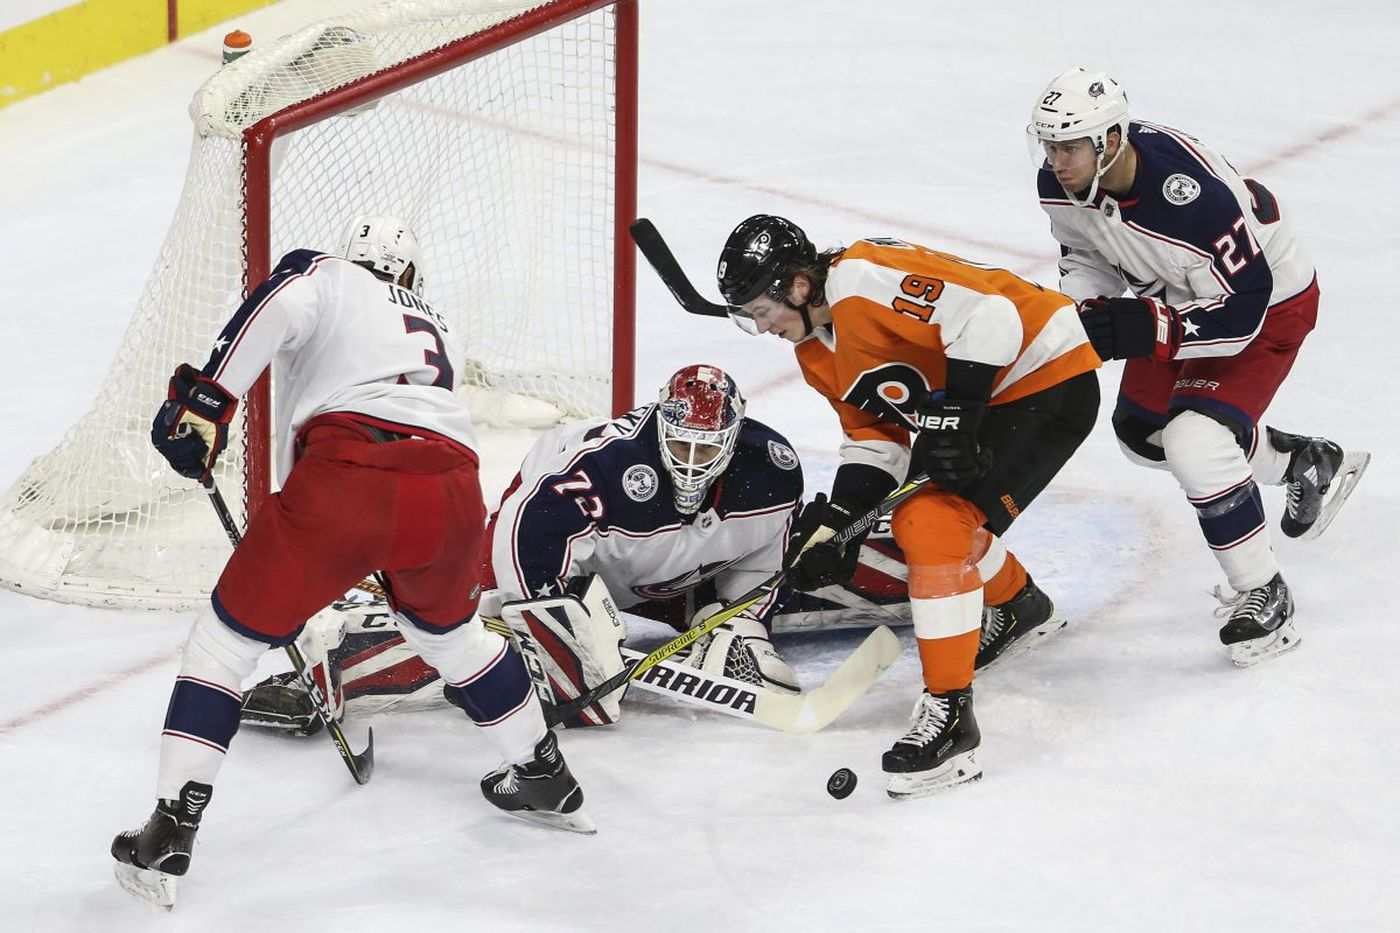 Flyers rally past Blue Jackets on Nolan Patrick's goal; Petr Mrazek superb in debut with new team